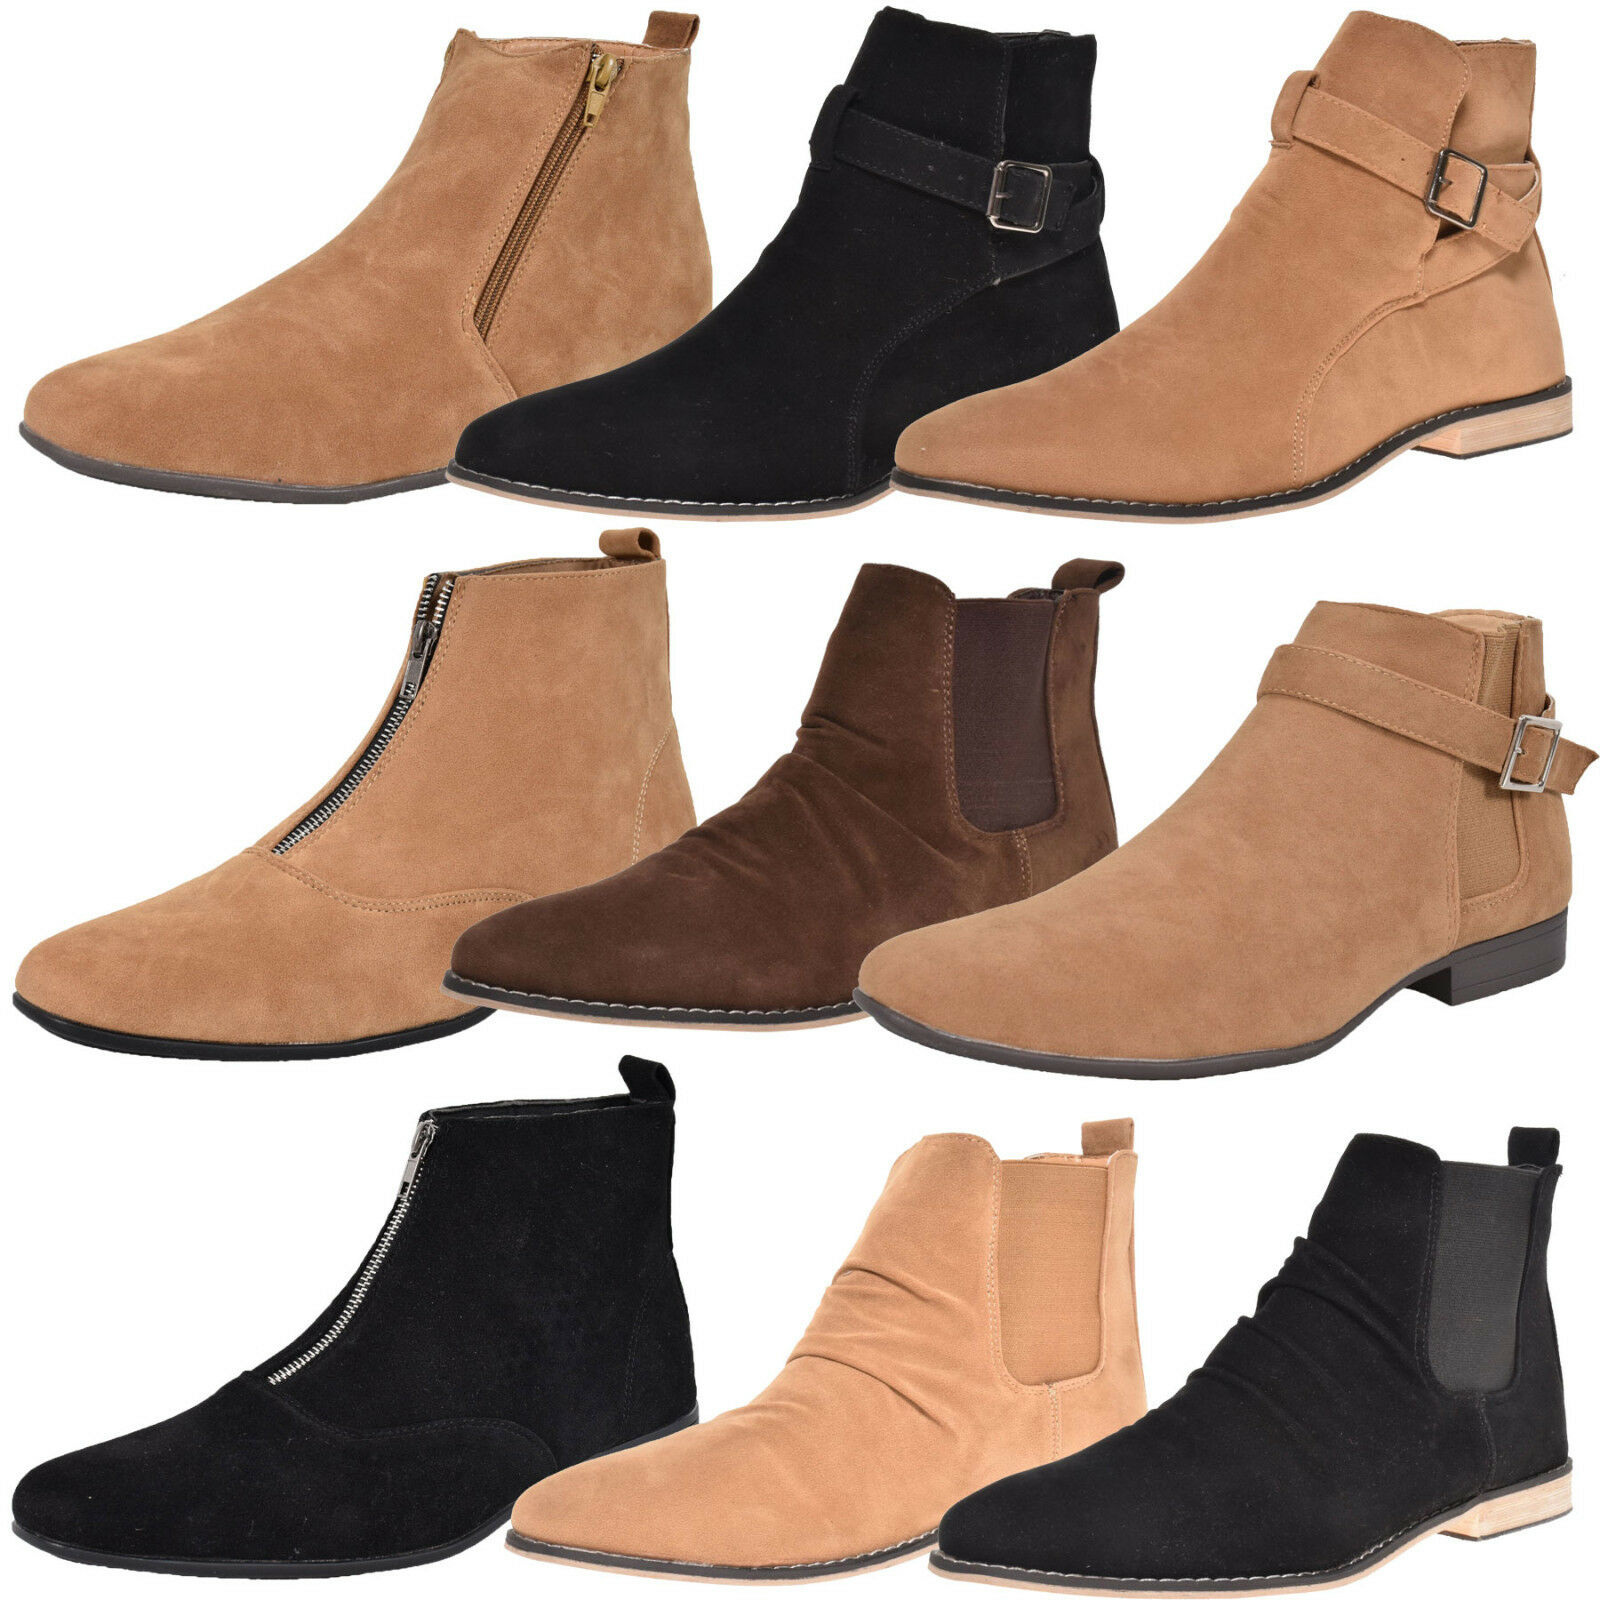 Loyalty & Faith Mens Faux Suede Chelsea Ankle Top Boot Block Heel High Top Ankle Shoes 027978